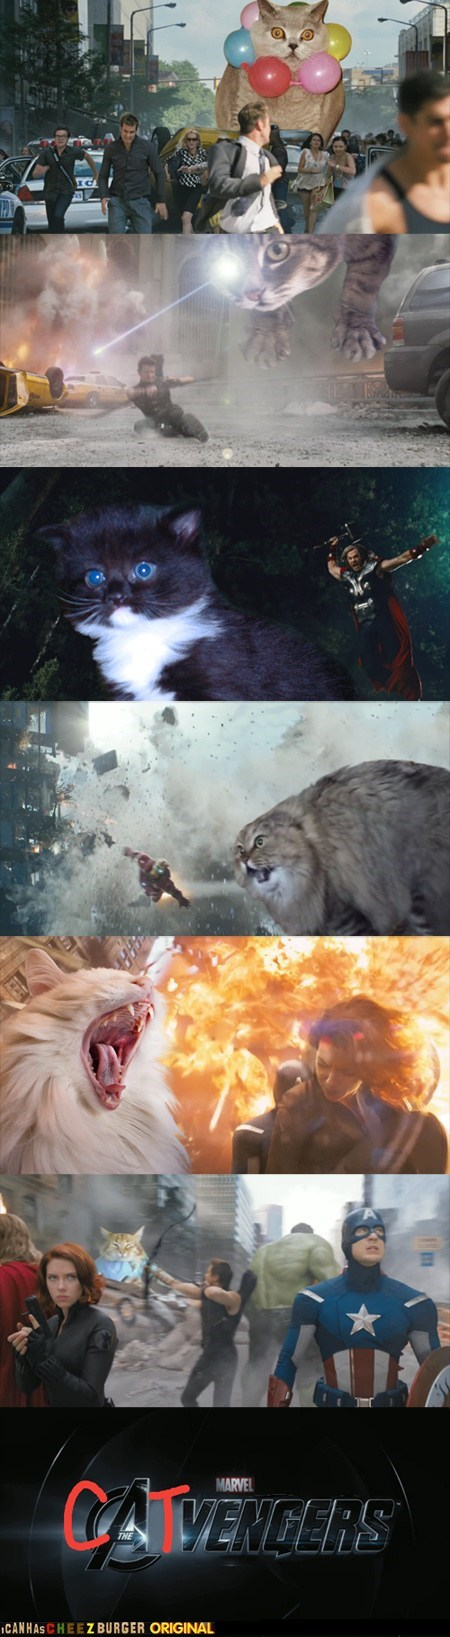 avengers best of the week Cats movies multipanel photoshopped superheroes The Avengers - 6160972544